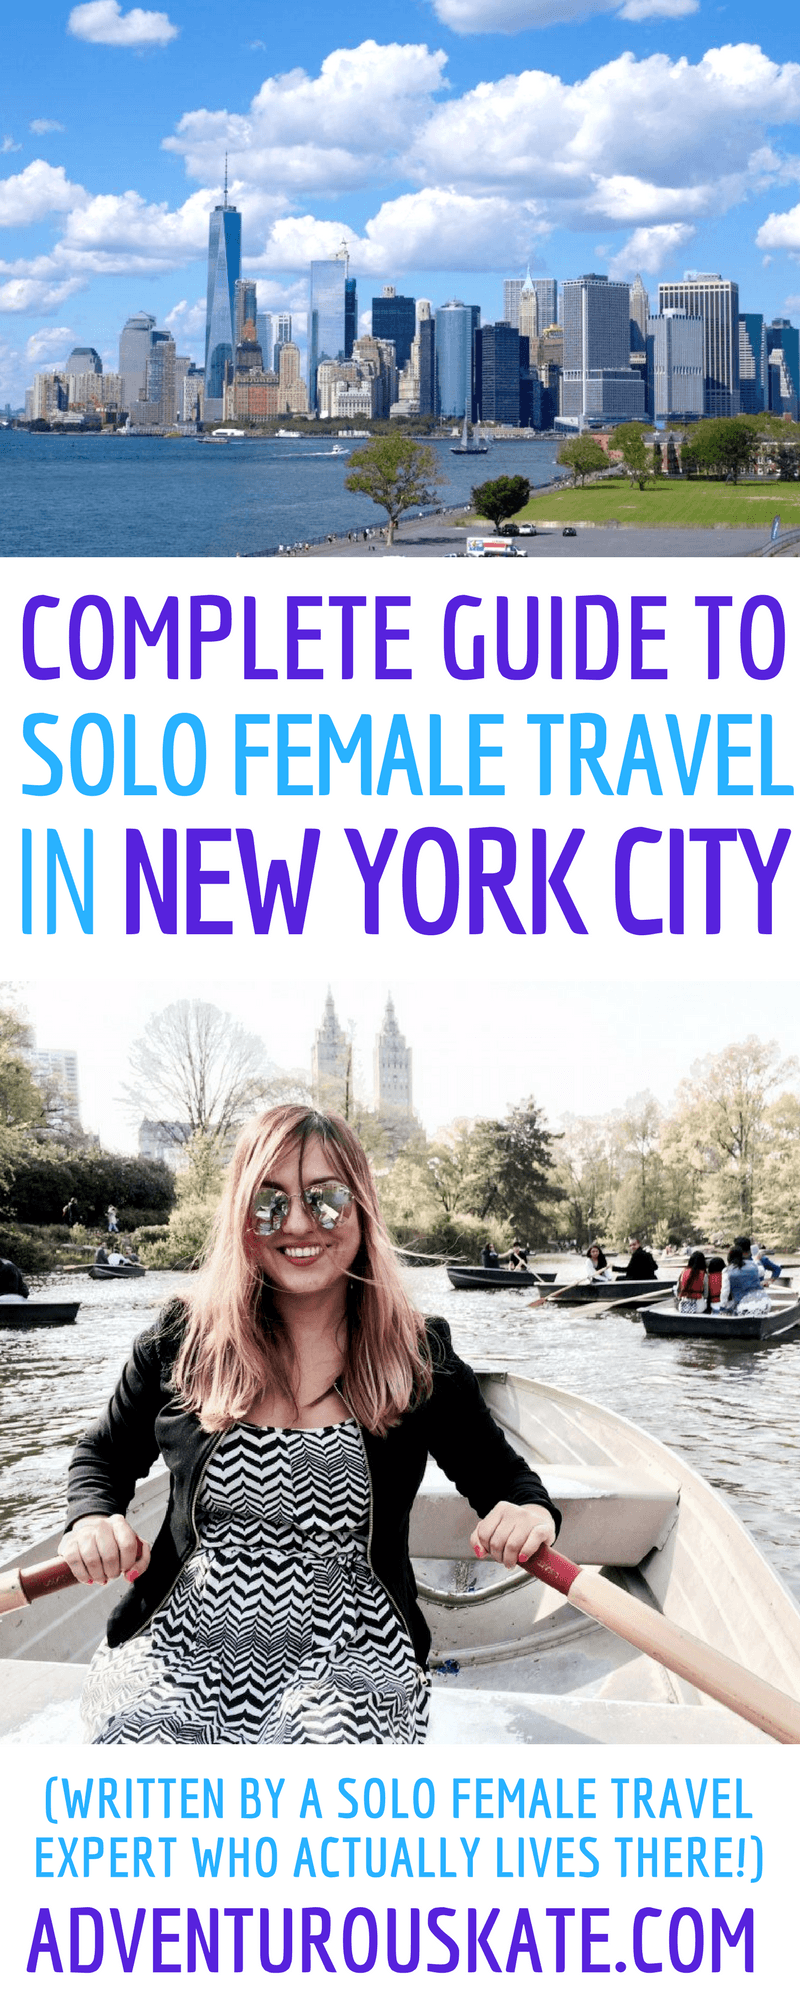 Have you traveled solo in New York? What tips would you add to the list?